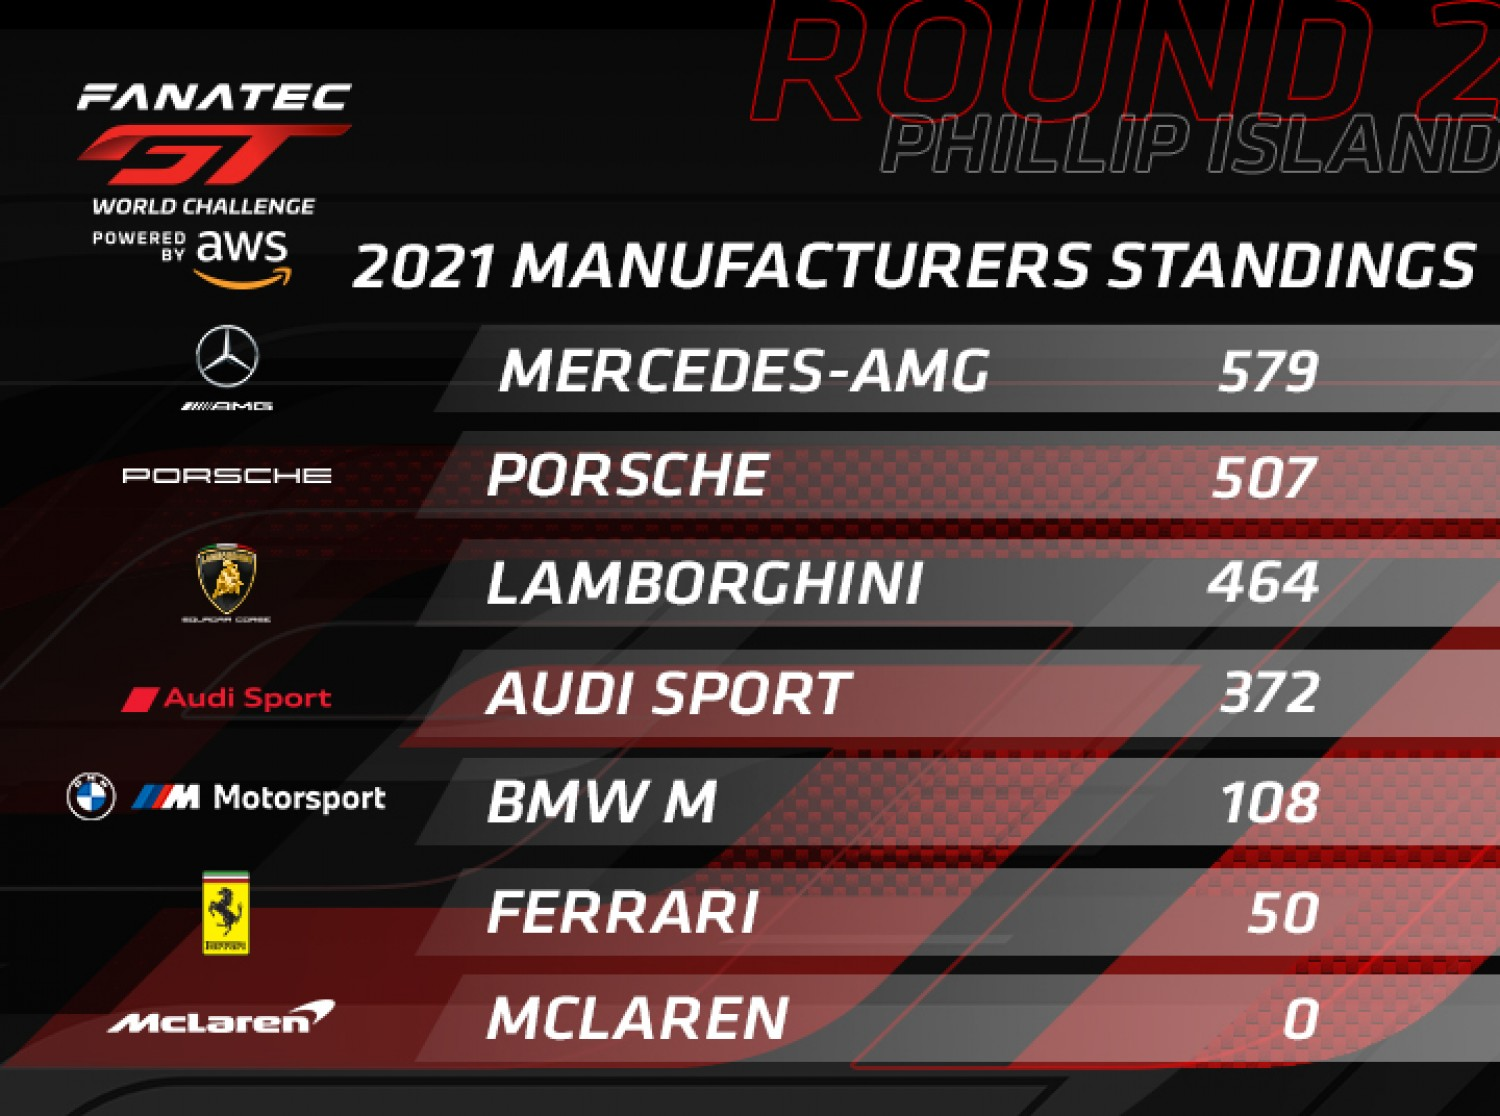 Mercedes-AMG edges clear of Porsche while Audi makes major gains at Phillip Island